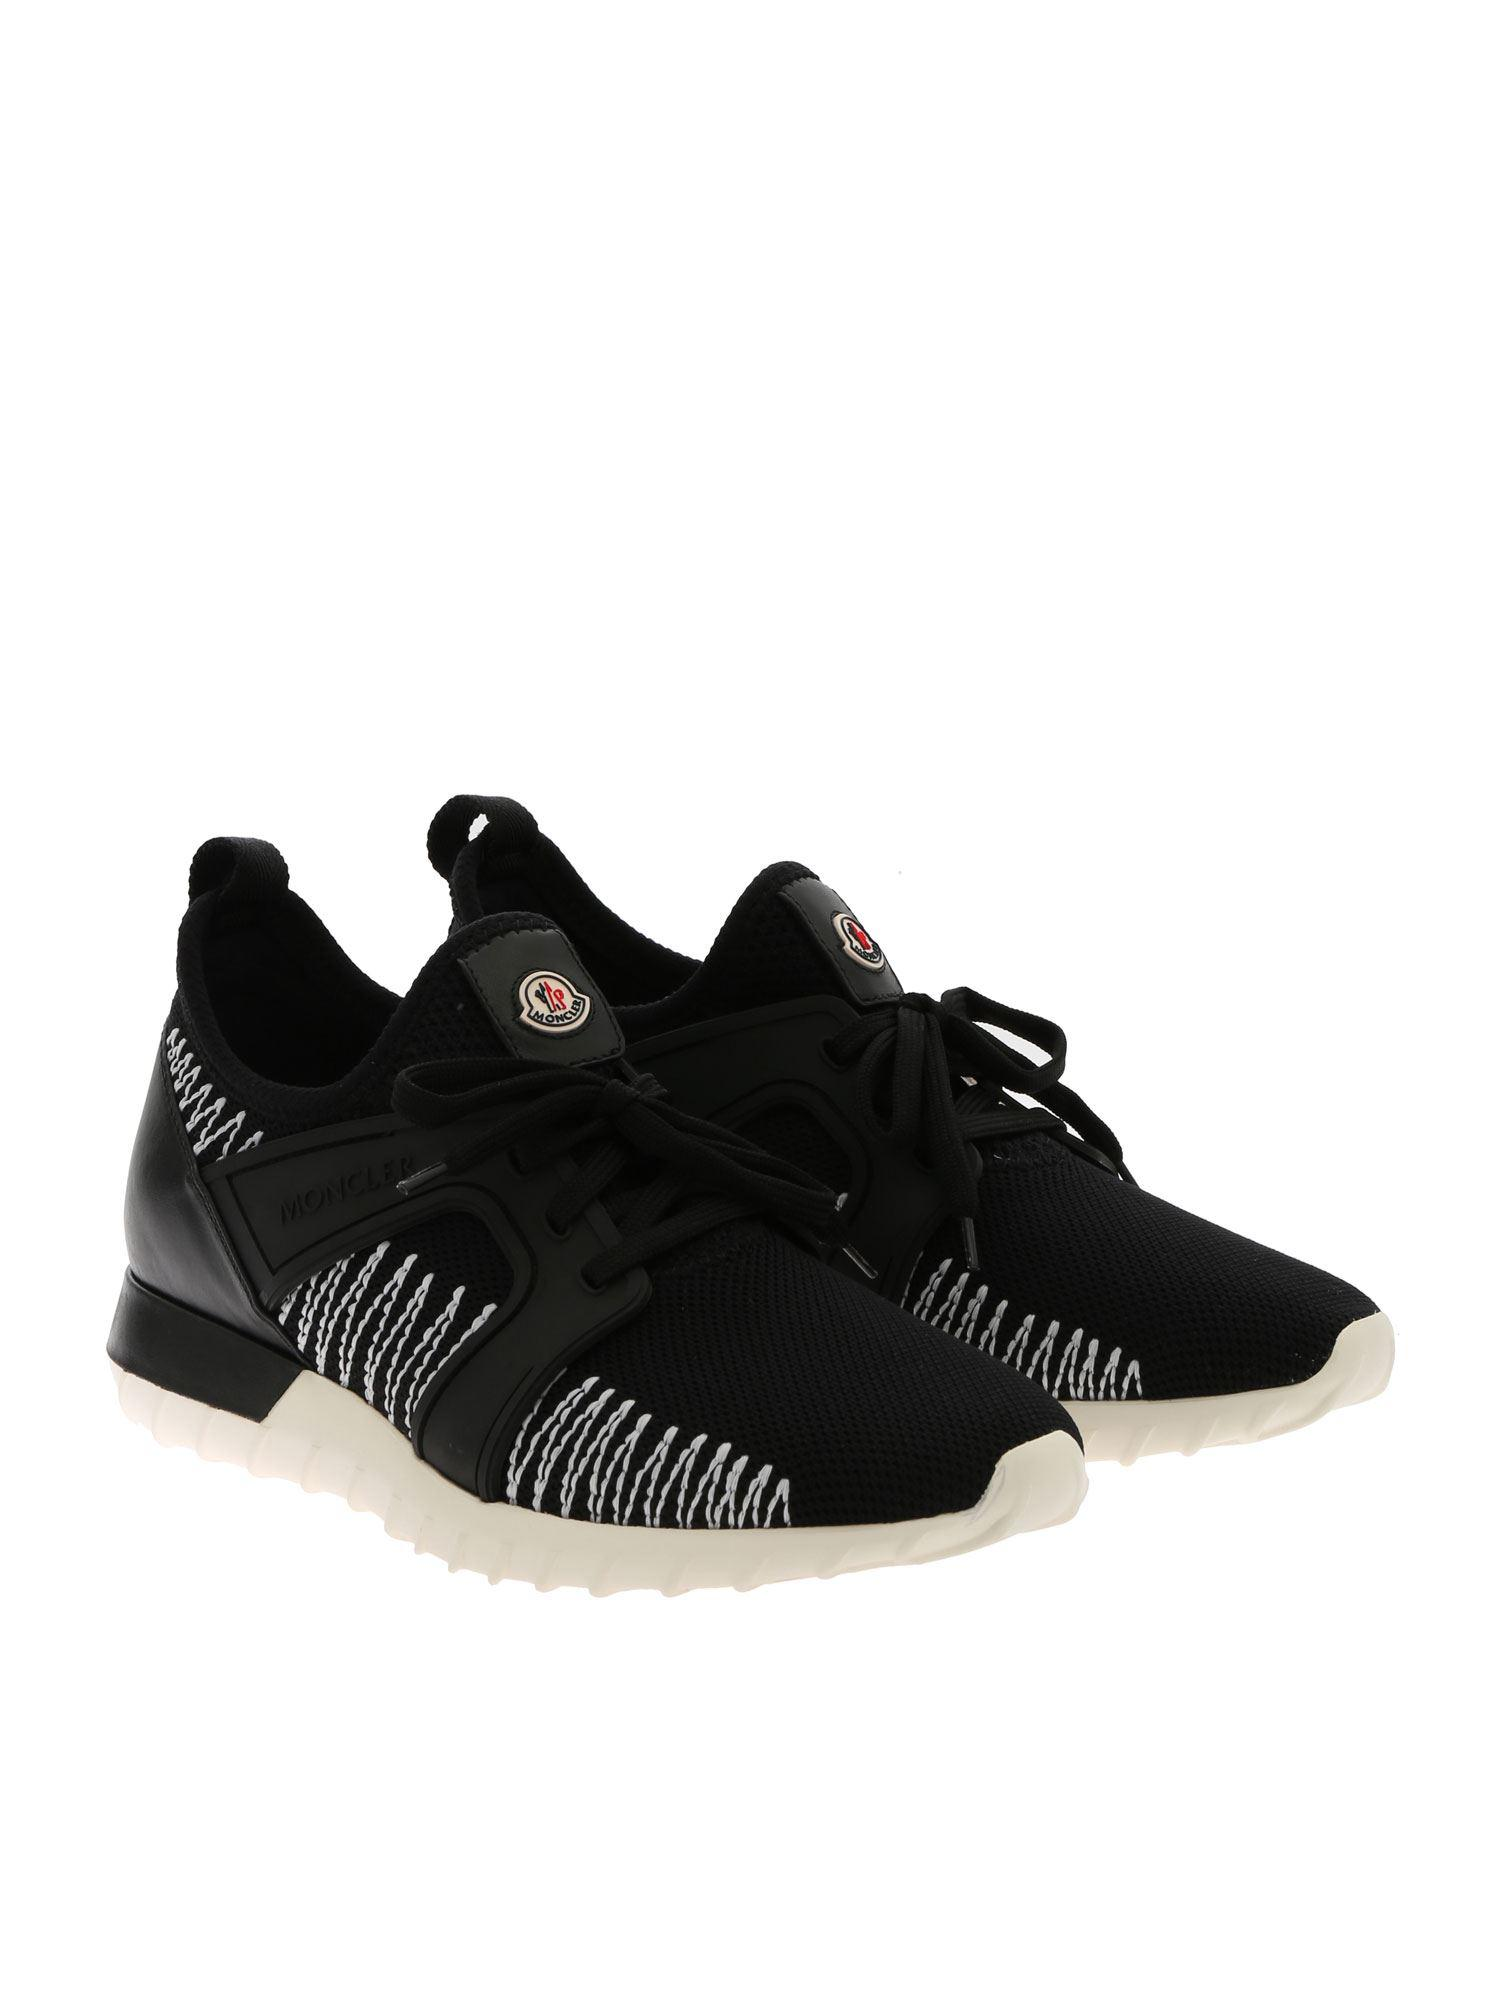 467293150 Moncler Black And White